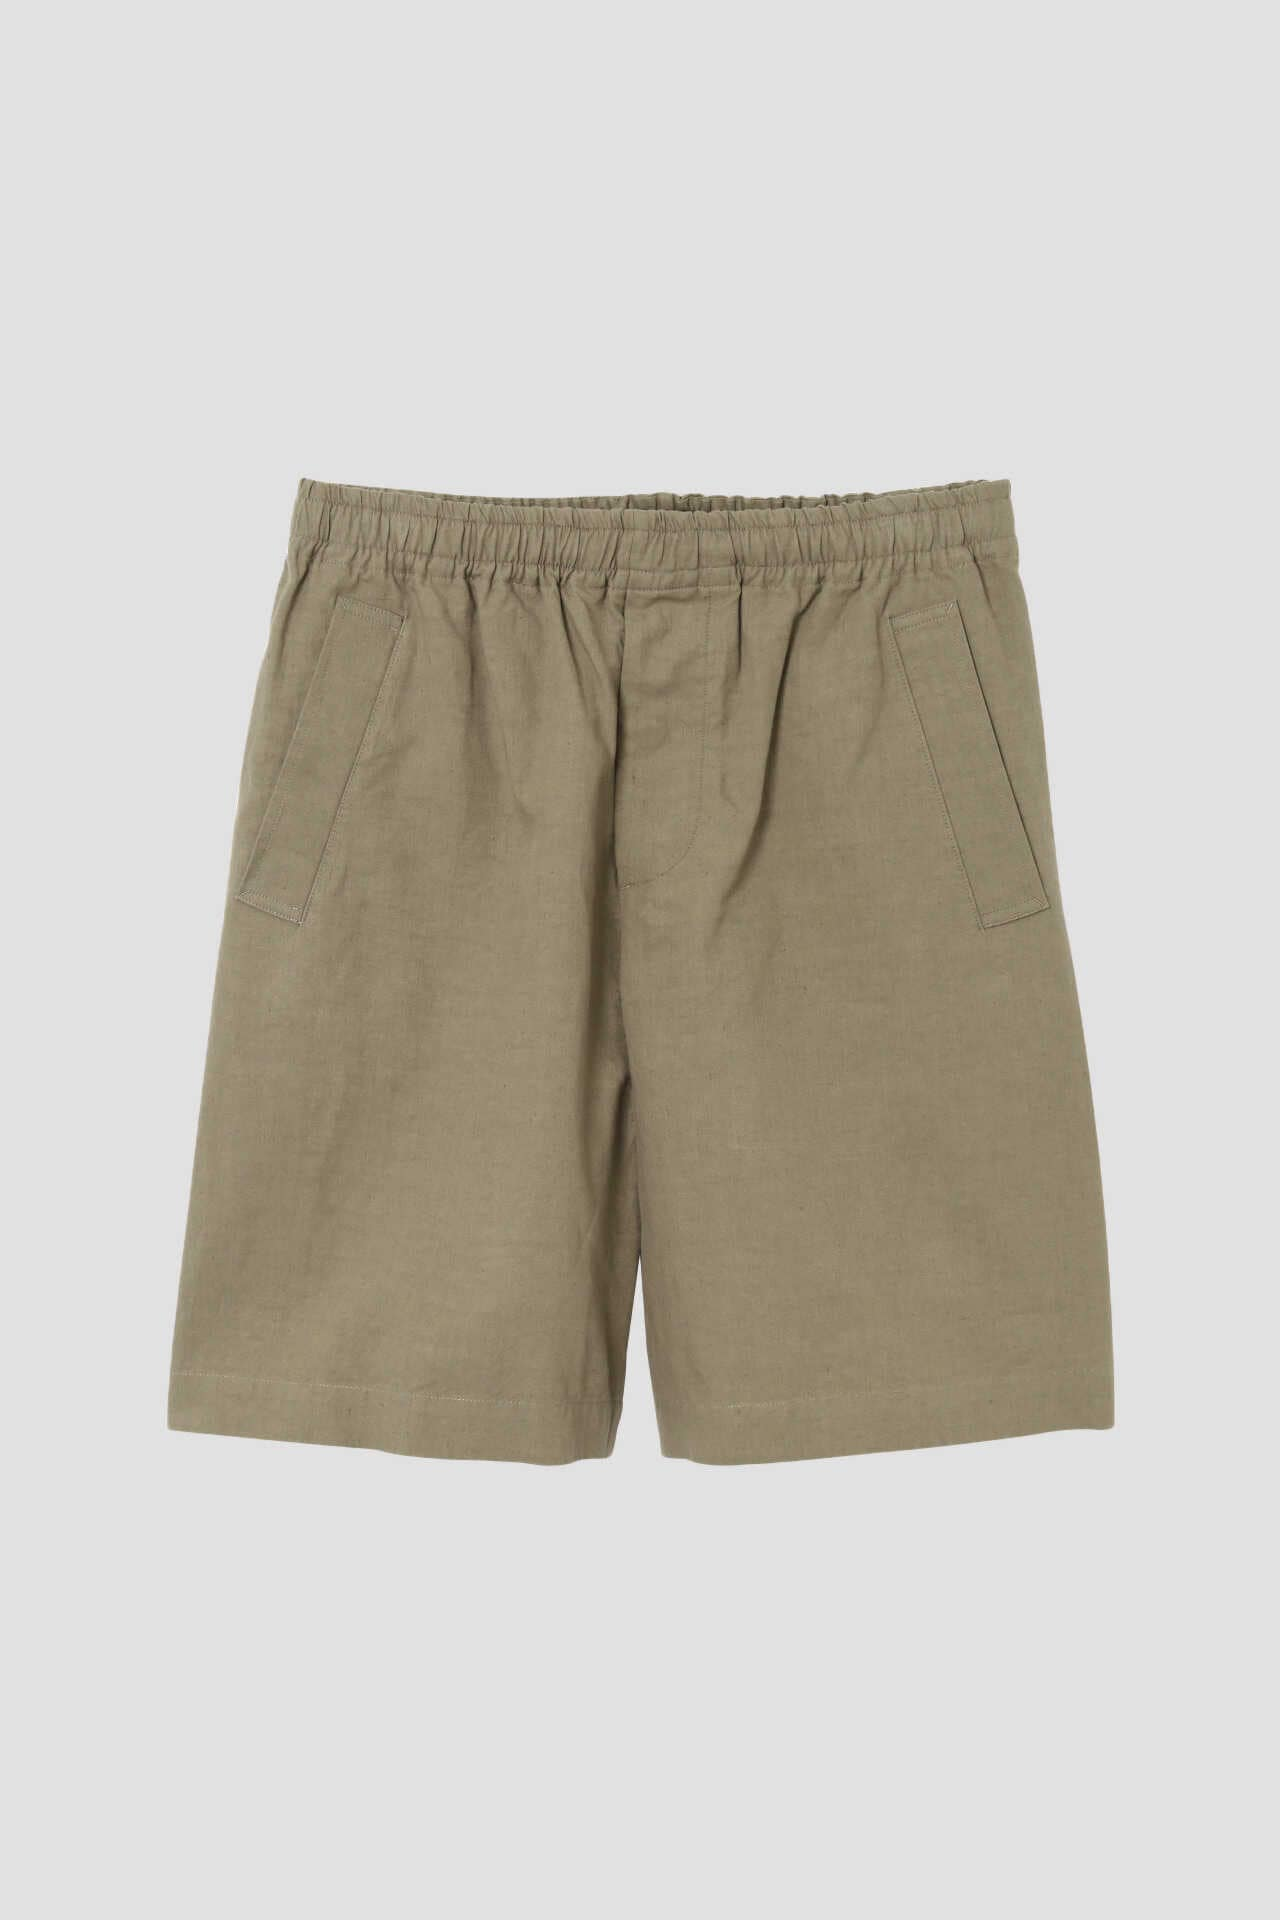 LINEN COTTON TWILL1